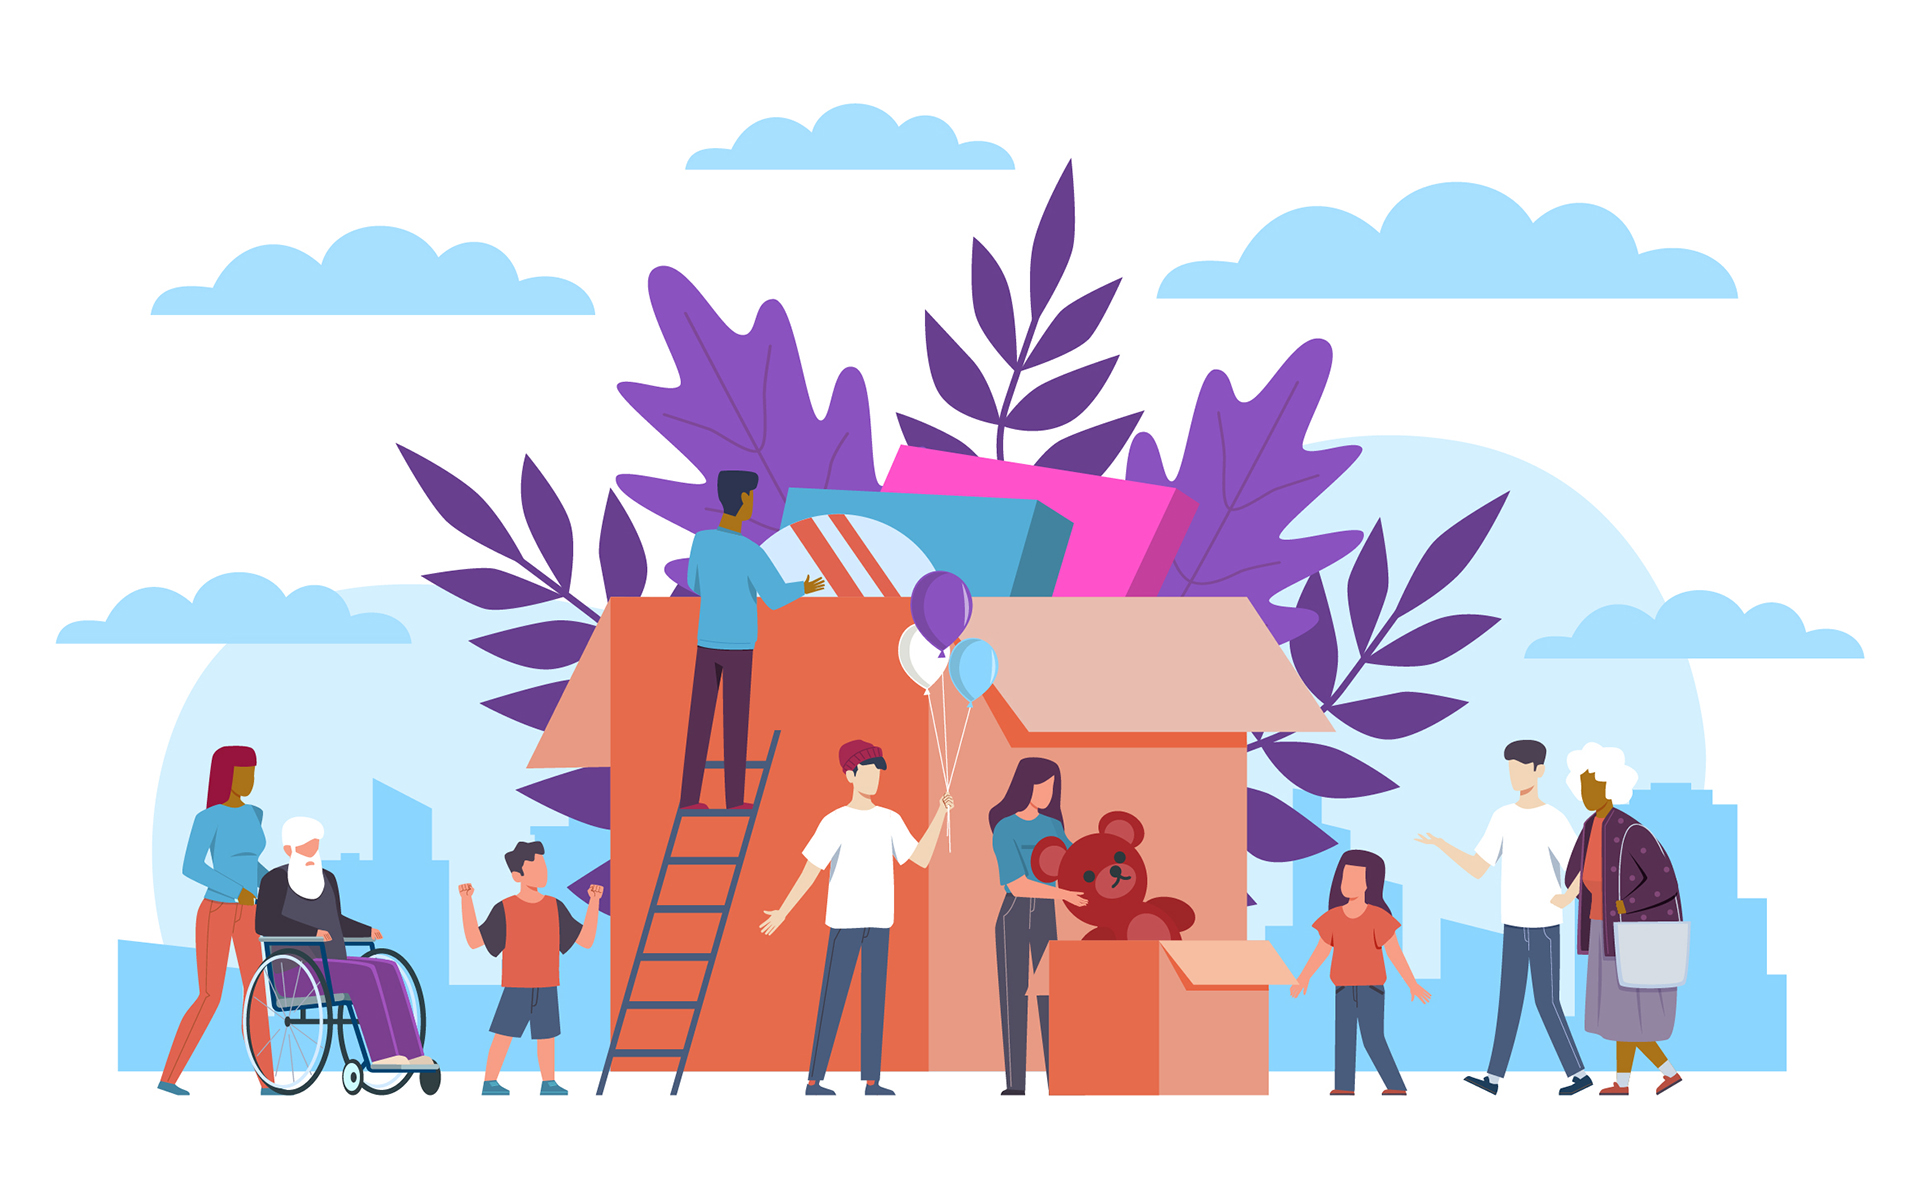 Illustration of a community coming together to help each other